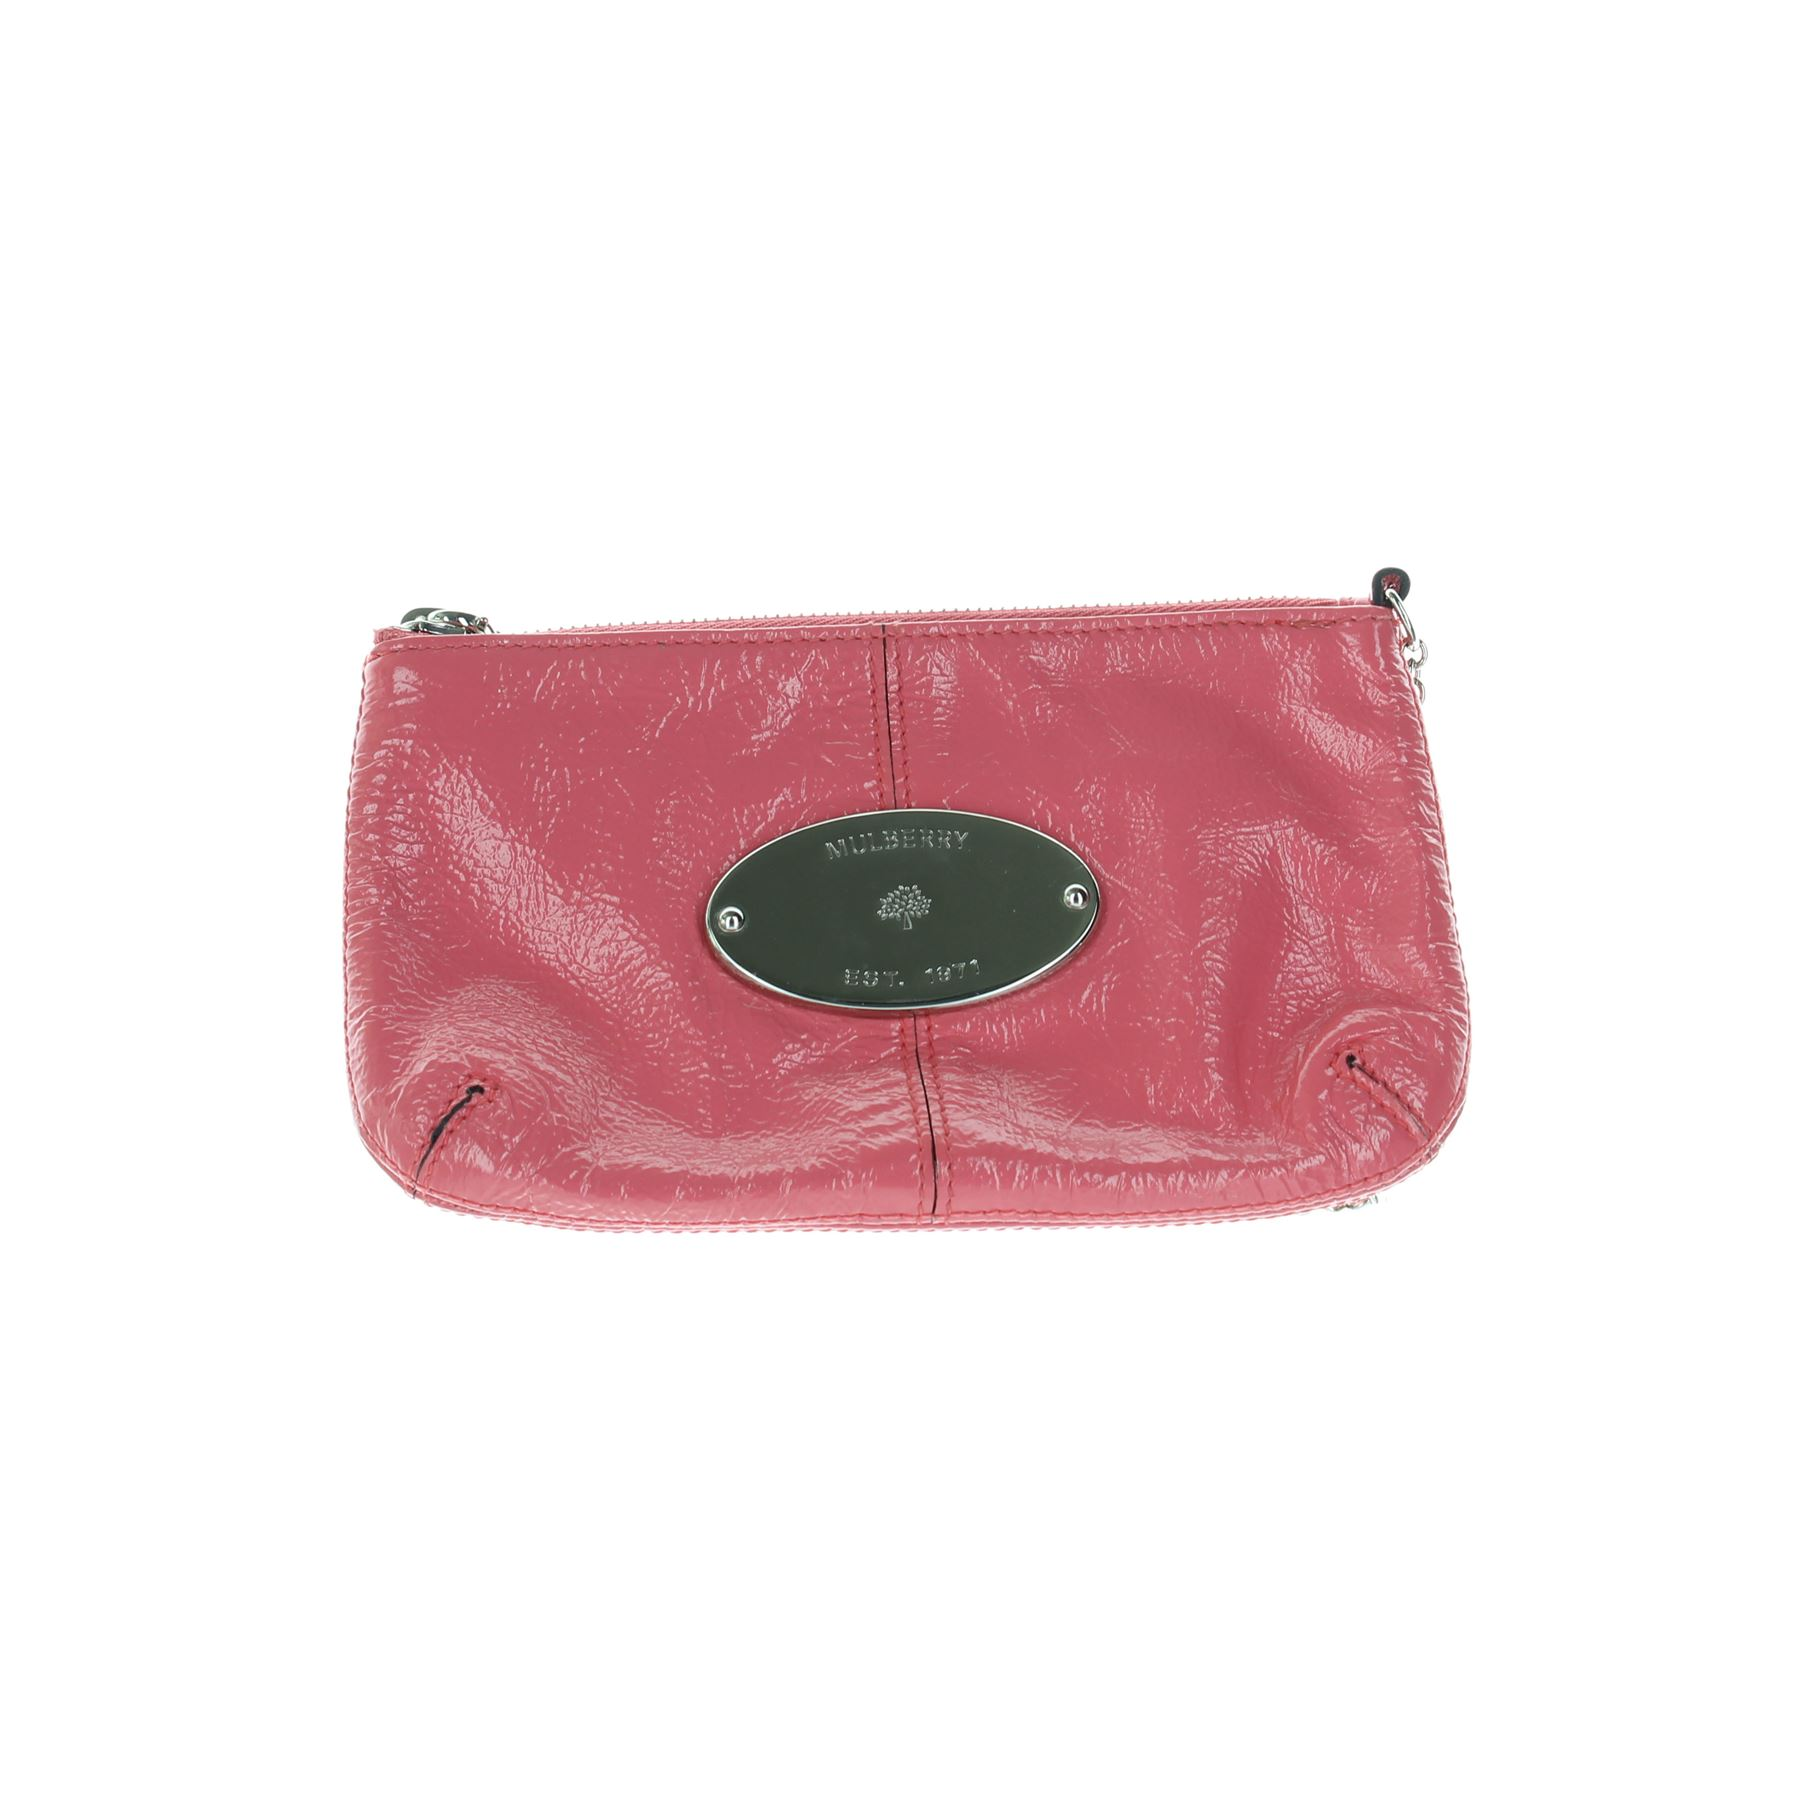 MULBERRY Charlie Pink Patent Leather Clutch Bag, 5